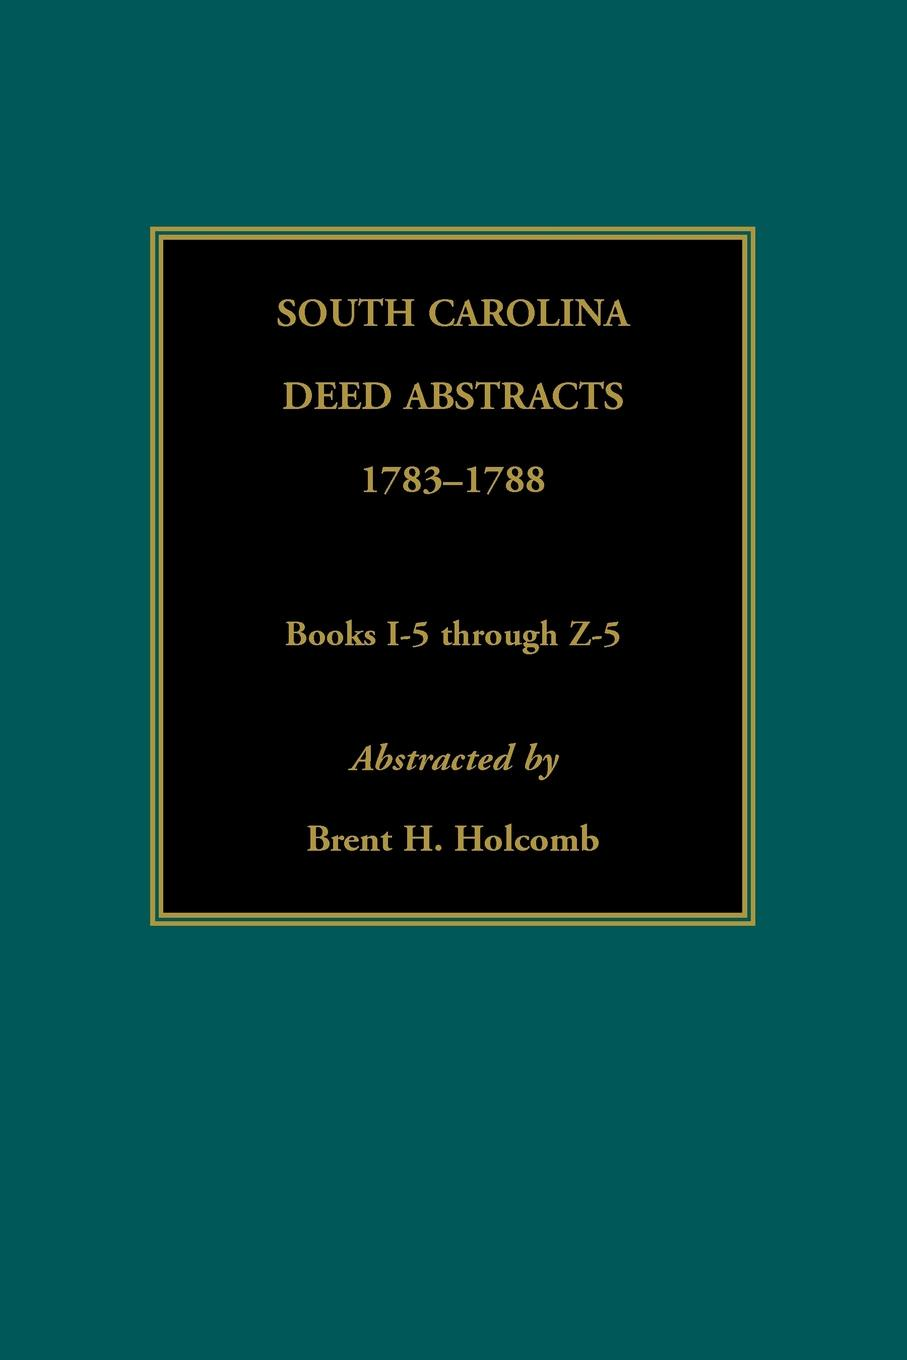 Brent Holcomb South Carolina Deed Abstracts, 1783-1788, Books I-5 through Z-5 north carolina dept of conservation and development the new north carolina in the advancing south